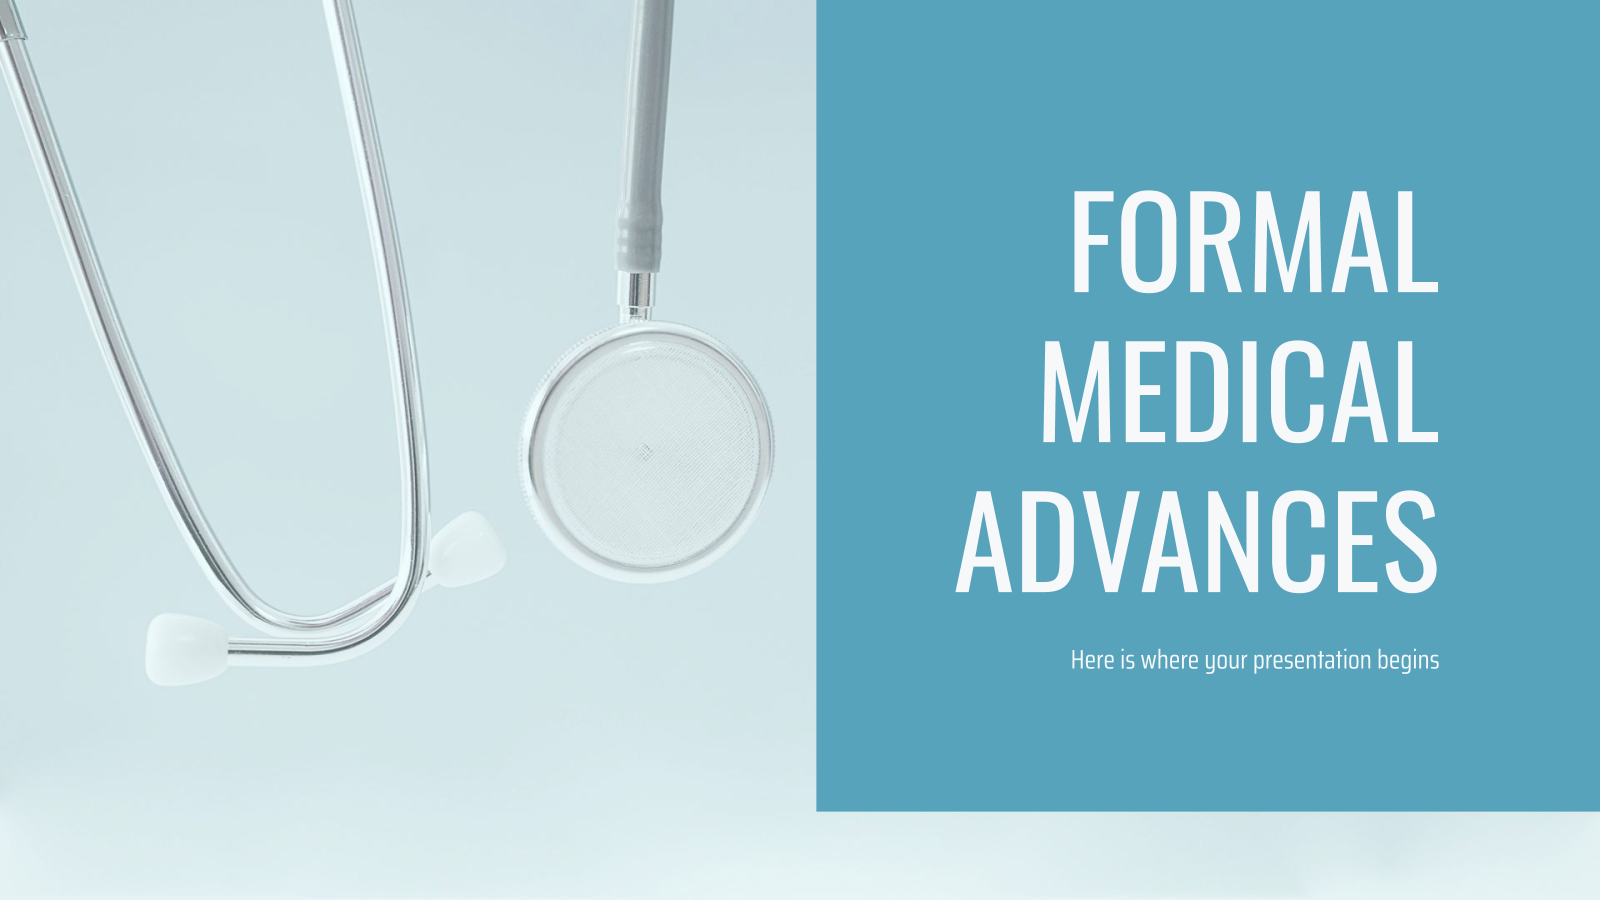 Formal Medical Advances presentation template